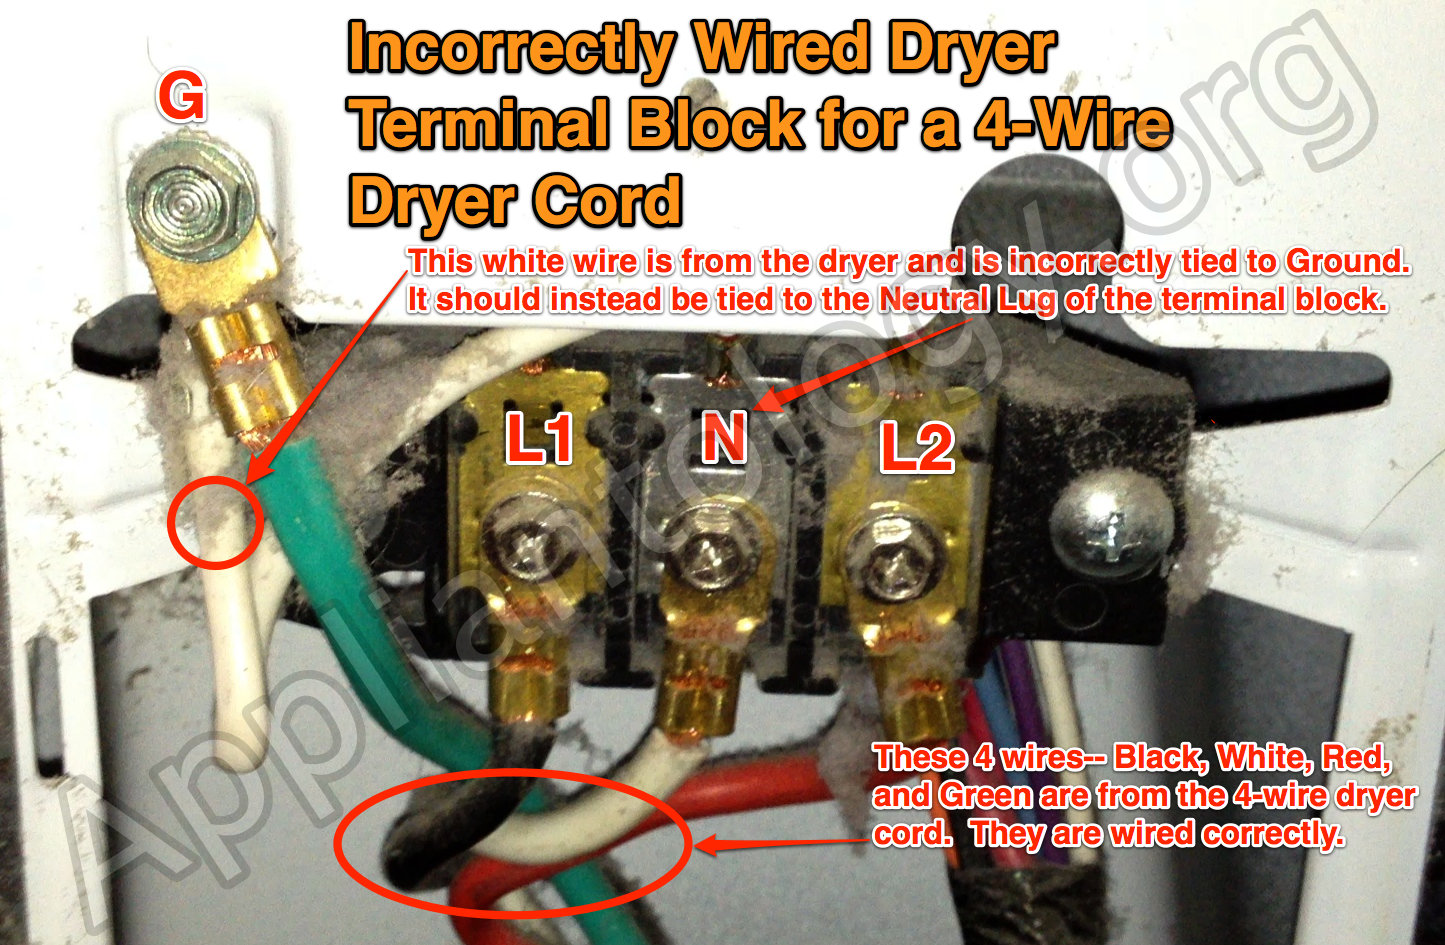 incorrectly wired dryer terminal block for a 4 wire dryer